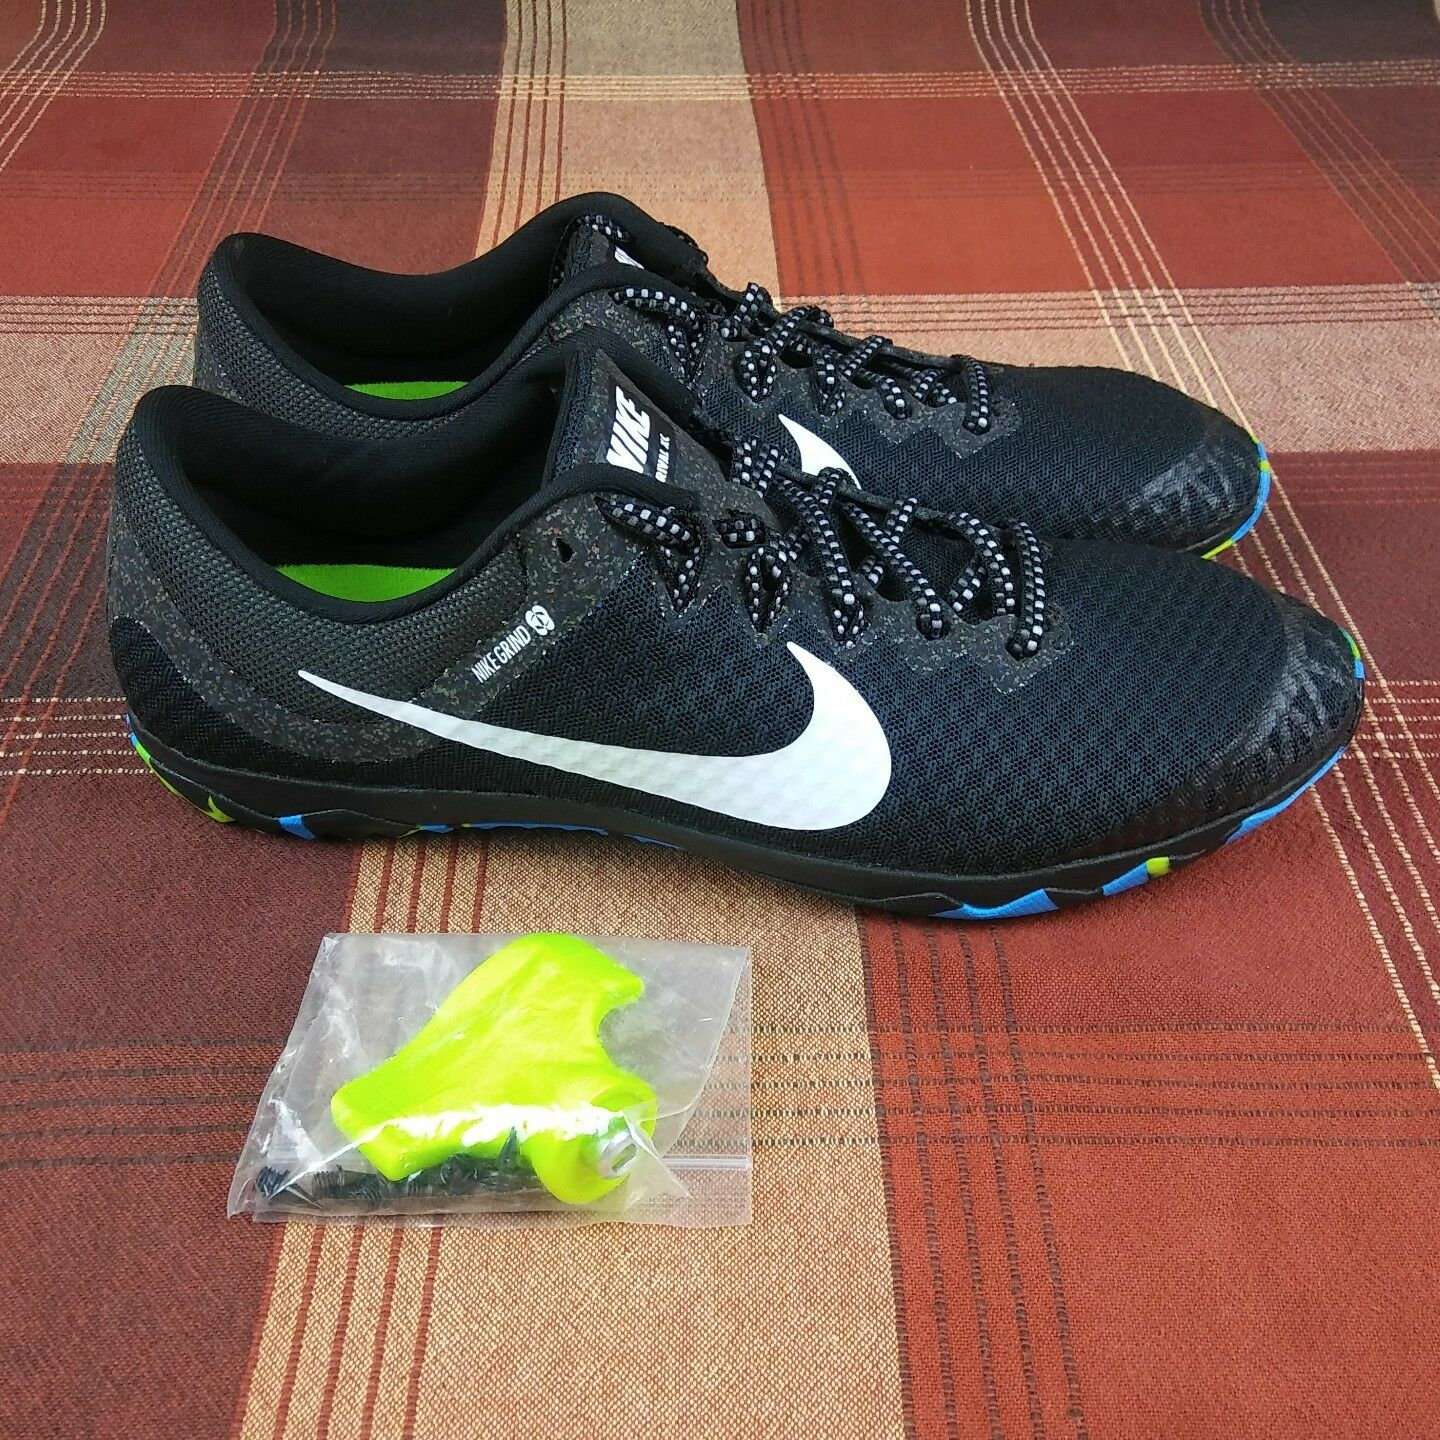 NIKE Zoom Rival XC Track Running Spikes Shoes Black Men's Comfortable Comfortable and good-looking